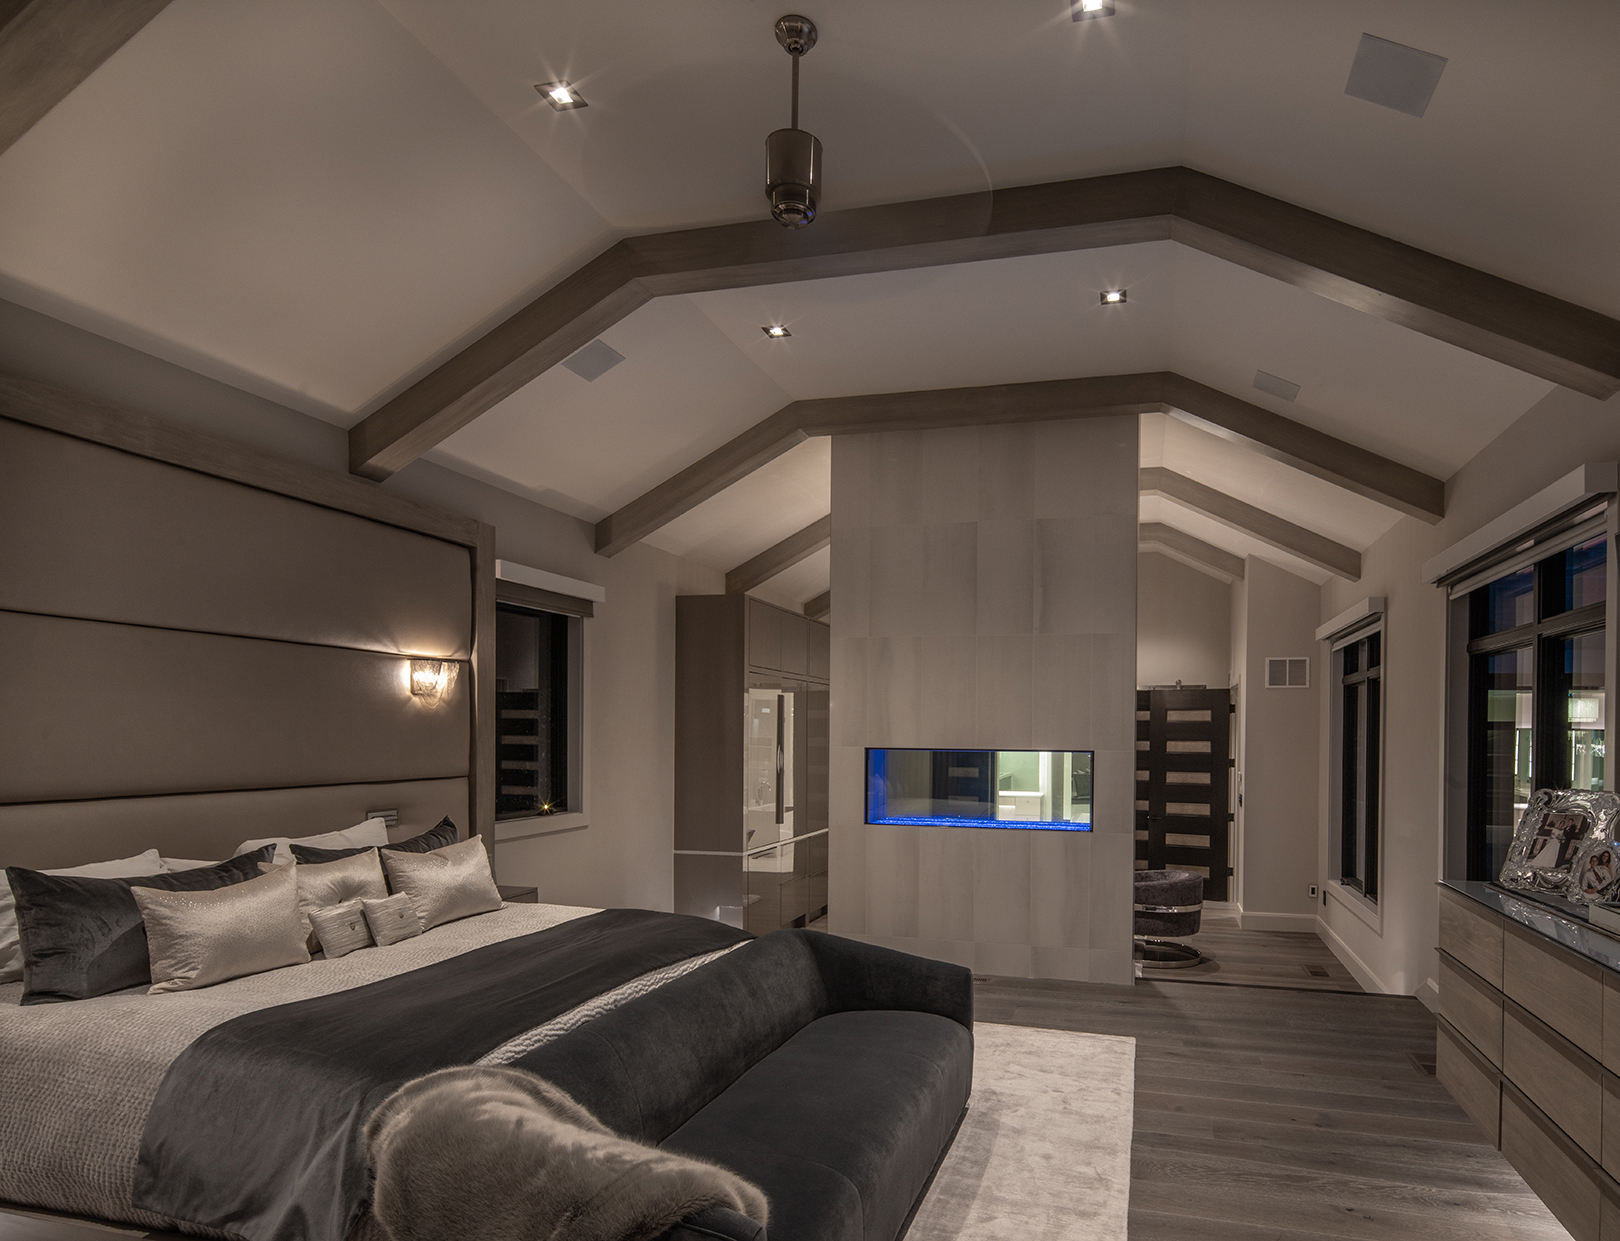 Large bedroom with several windows looking outside